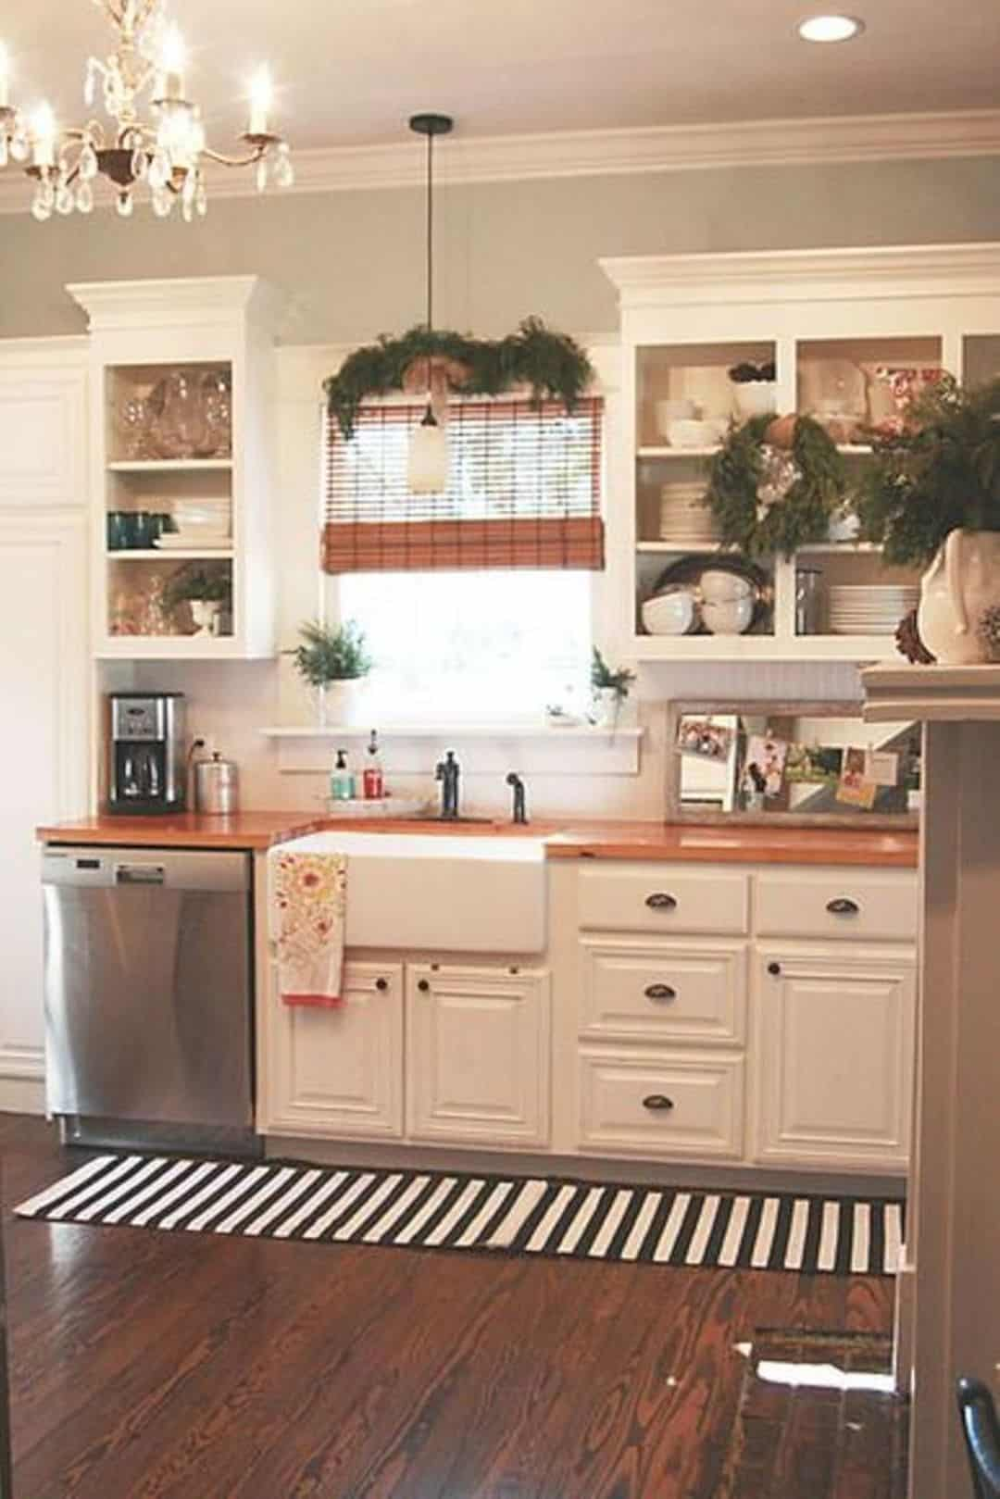 16 Small Cottage Interior Design Ideas In 2020 Country Kitchen Designs Kitchen Design Small Kitchen Decor